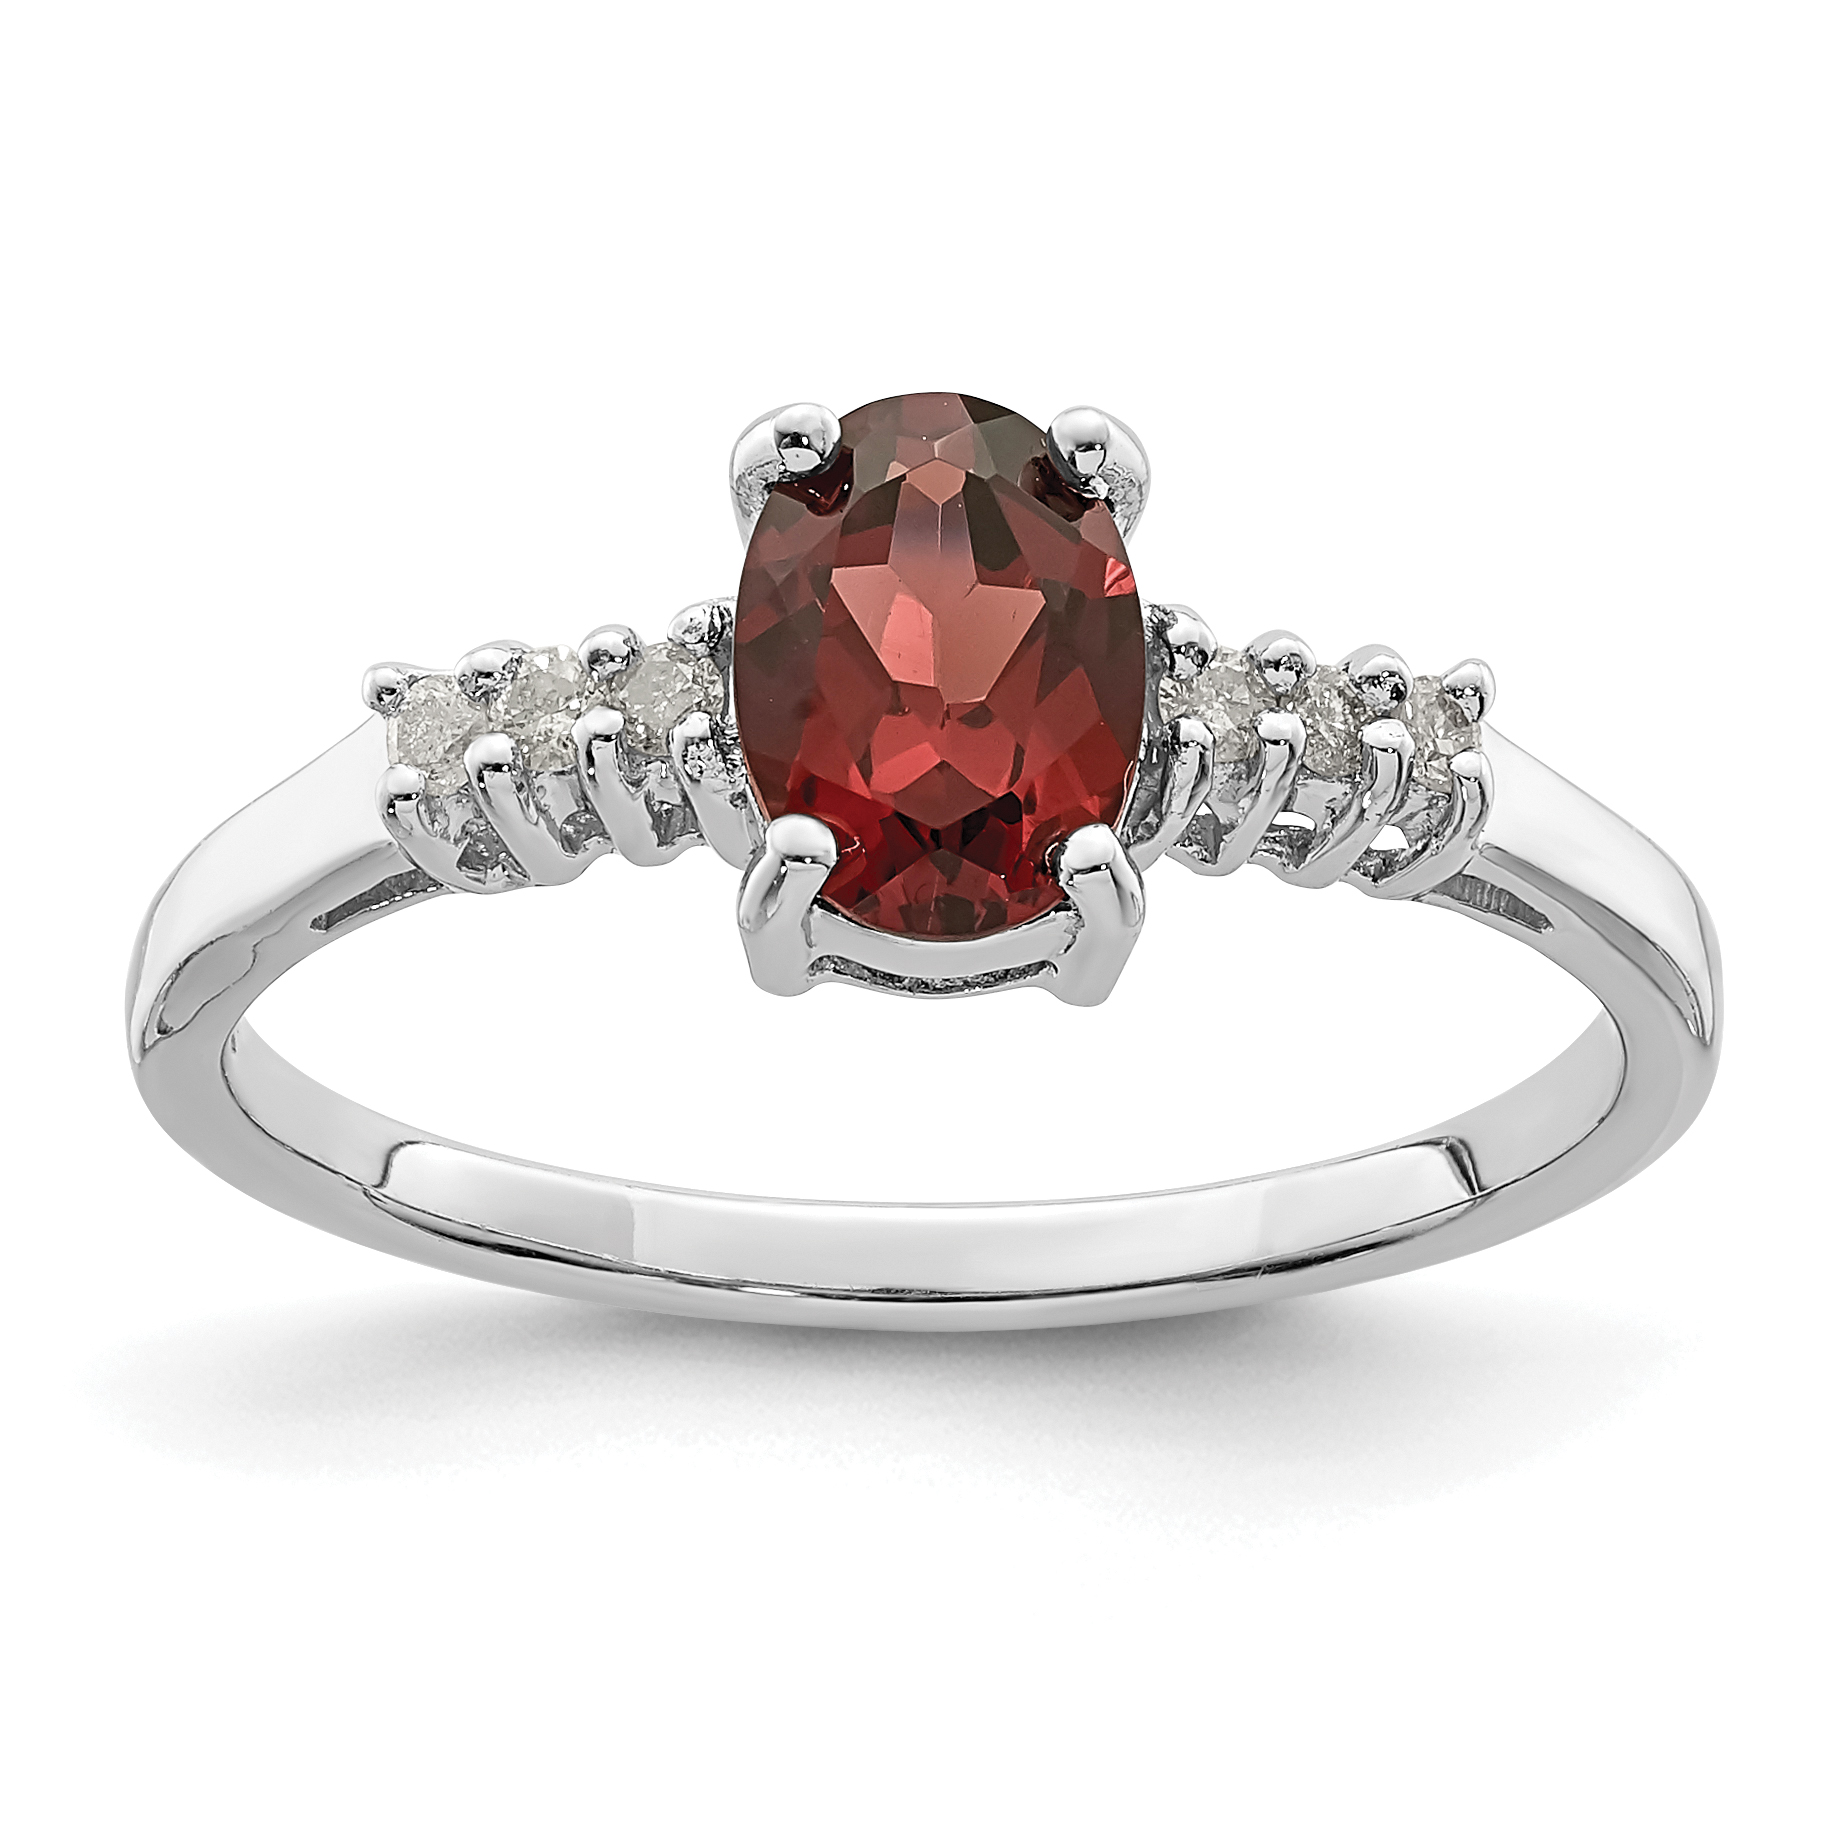 925 Sterling Silver Rhodium-plated Garnet and Diamond Ring - image 2 de 2